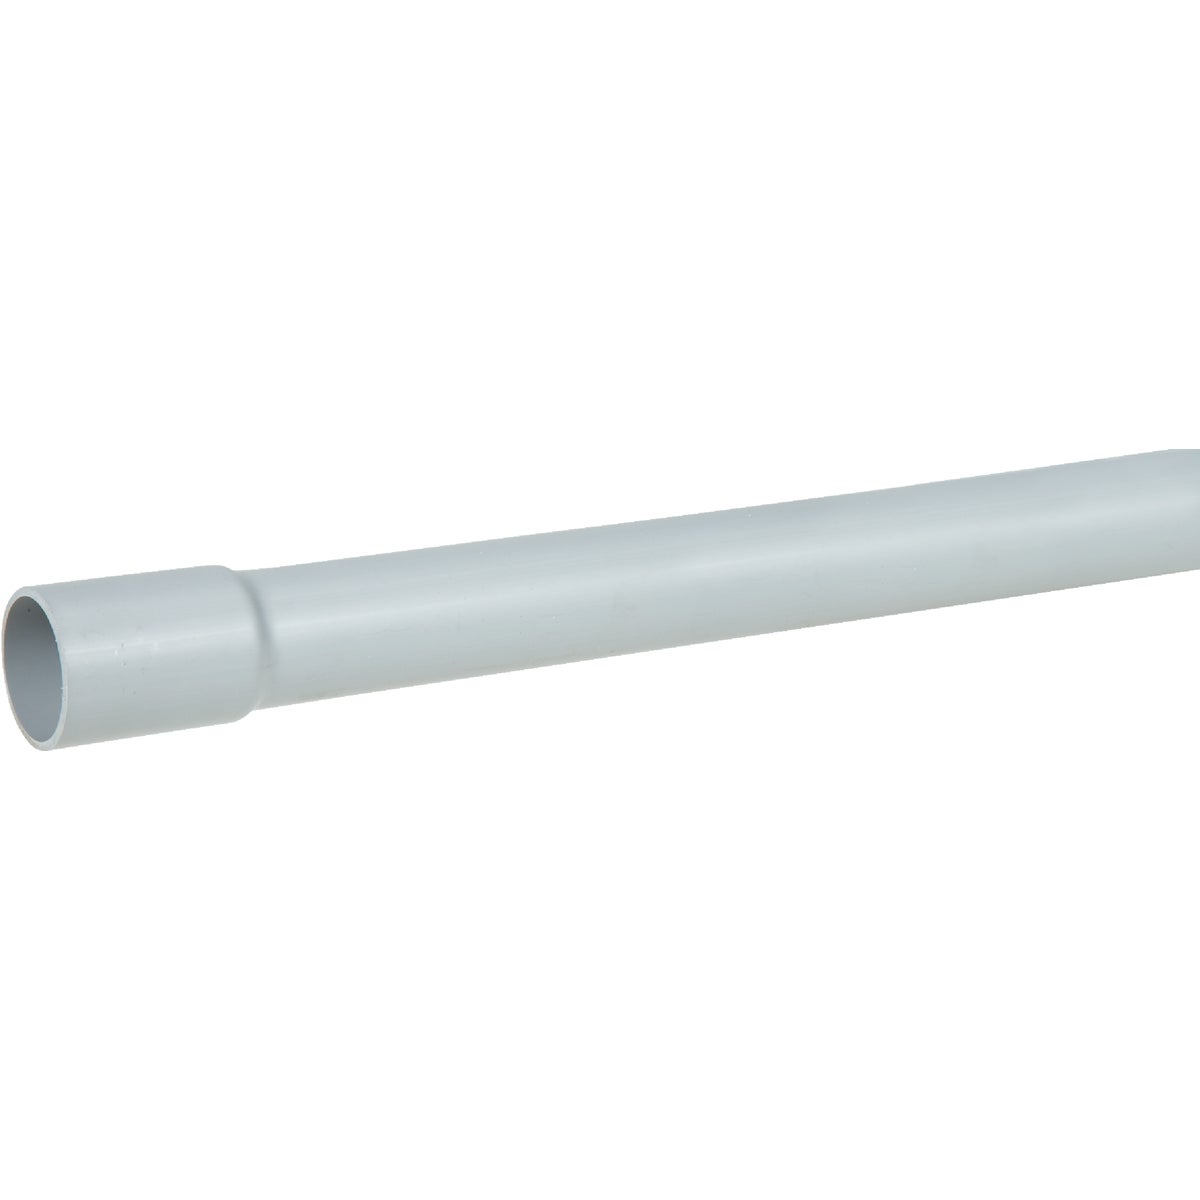 "1/2"" SCH80 10' CONDUIT - 49405-010 by Prime Conduit"